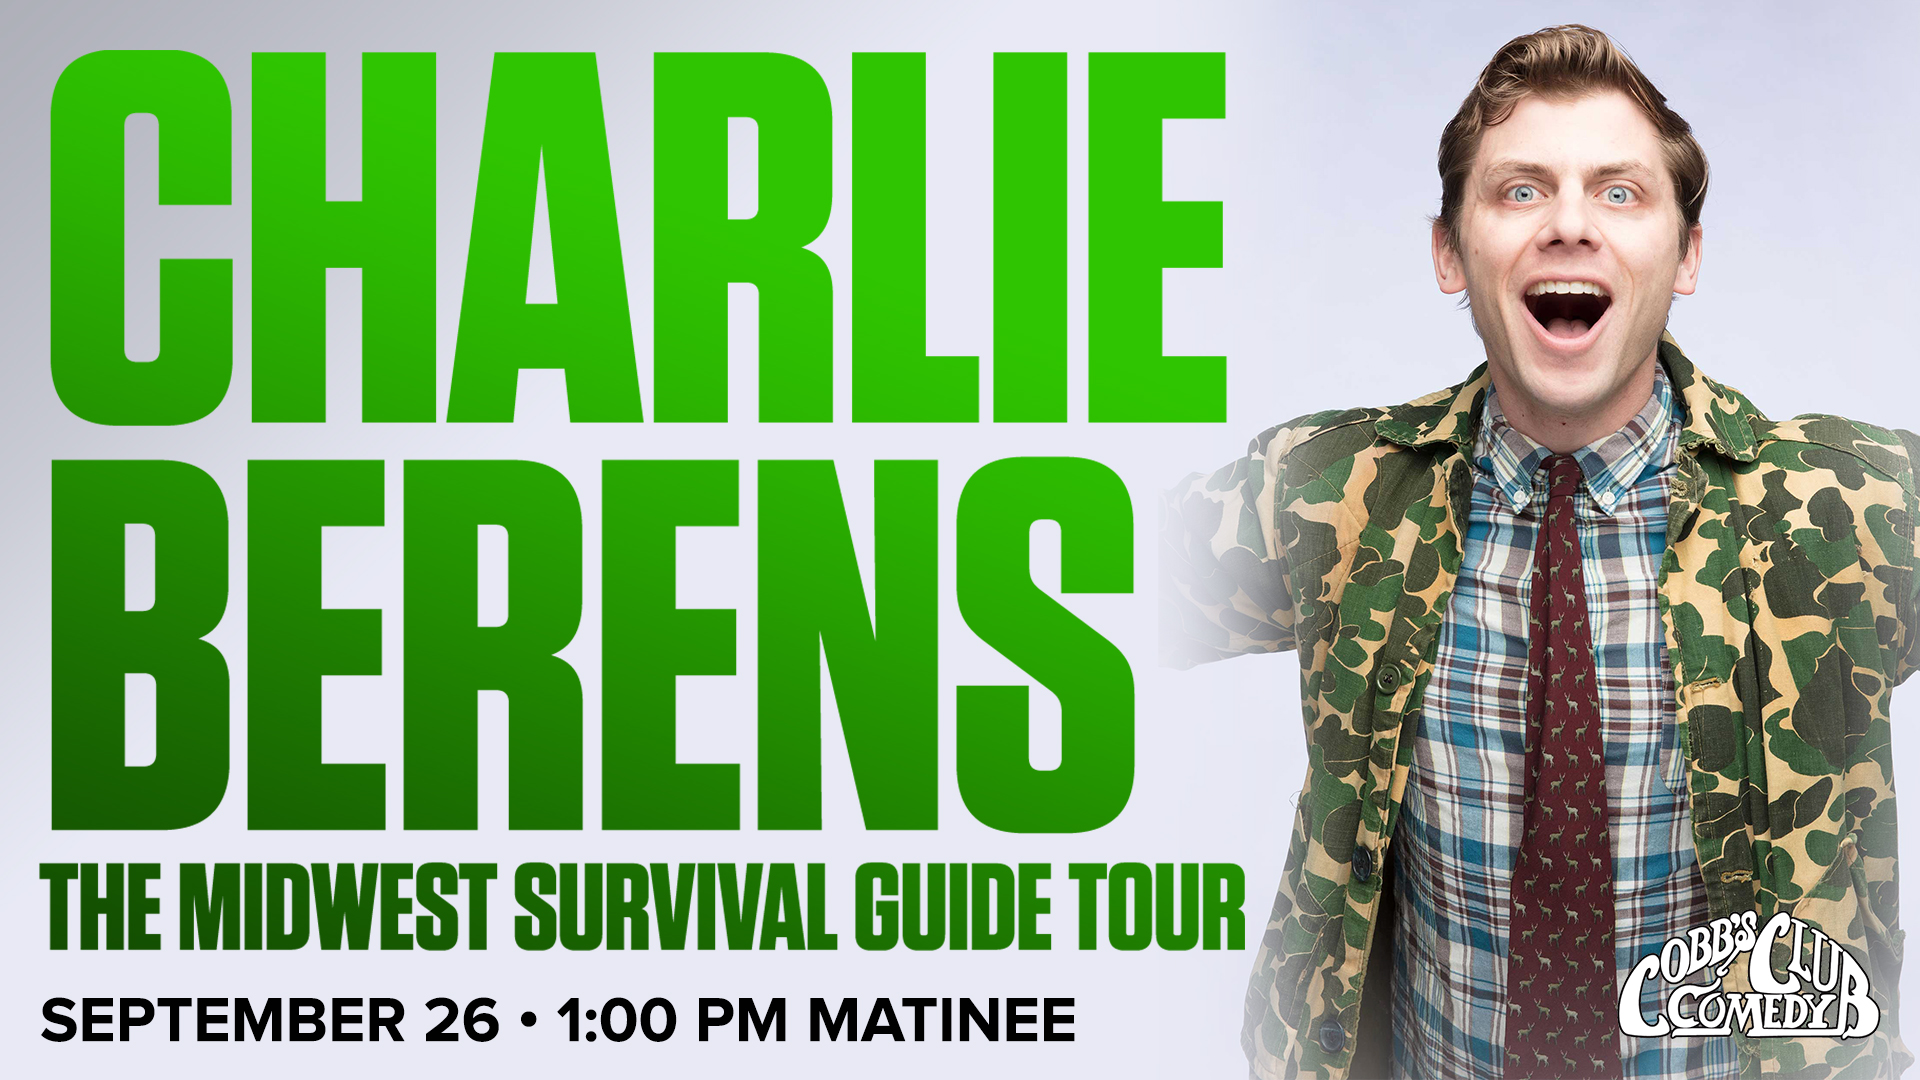 Charlie Berens: The Midwest Survival Guide Tour - 16+ with Paren